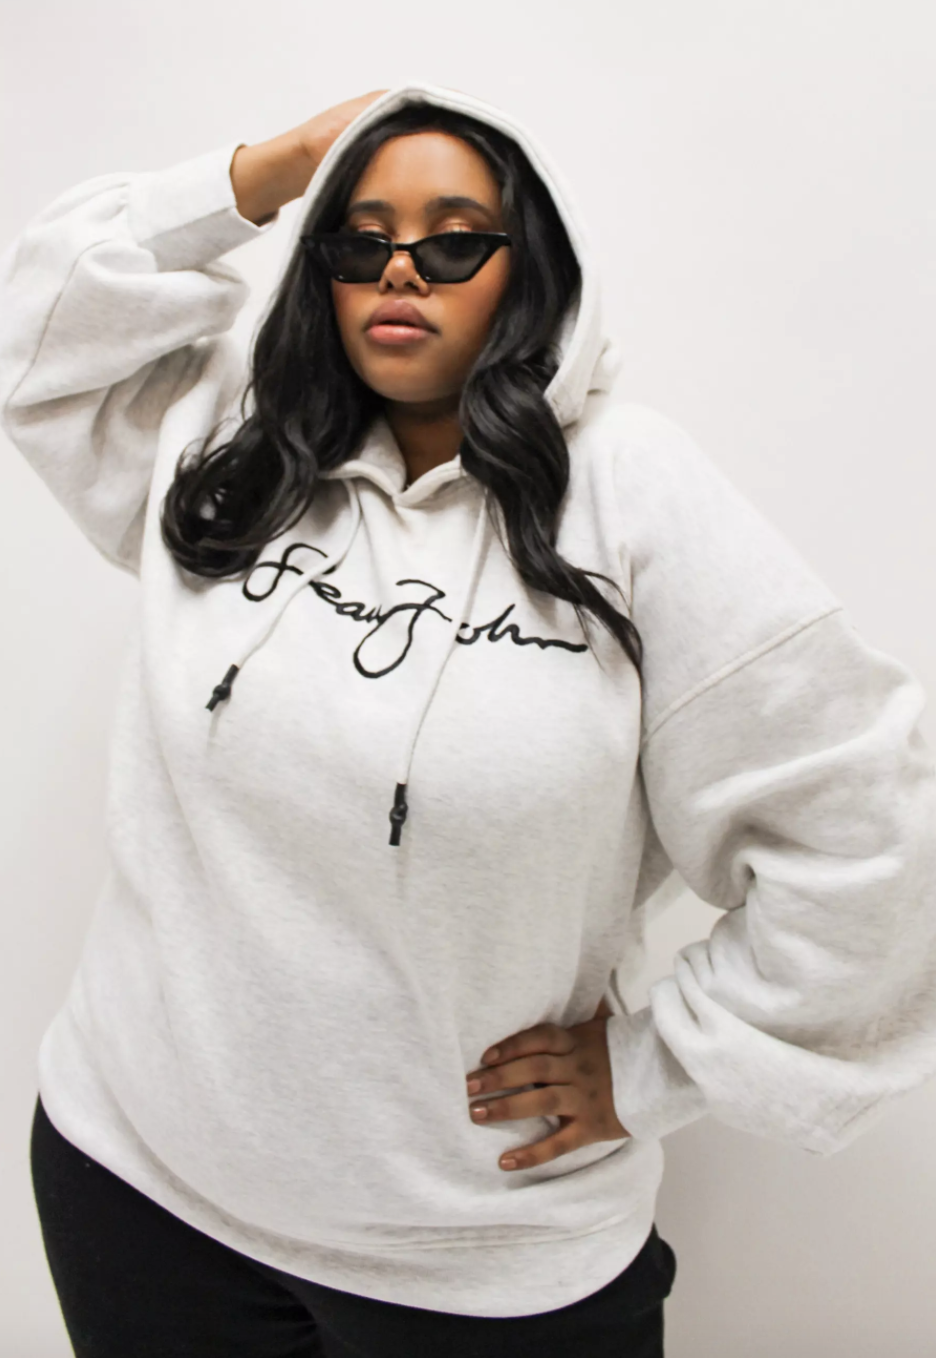 model wearing a gray hoodie that says sean john on the front